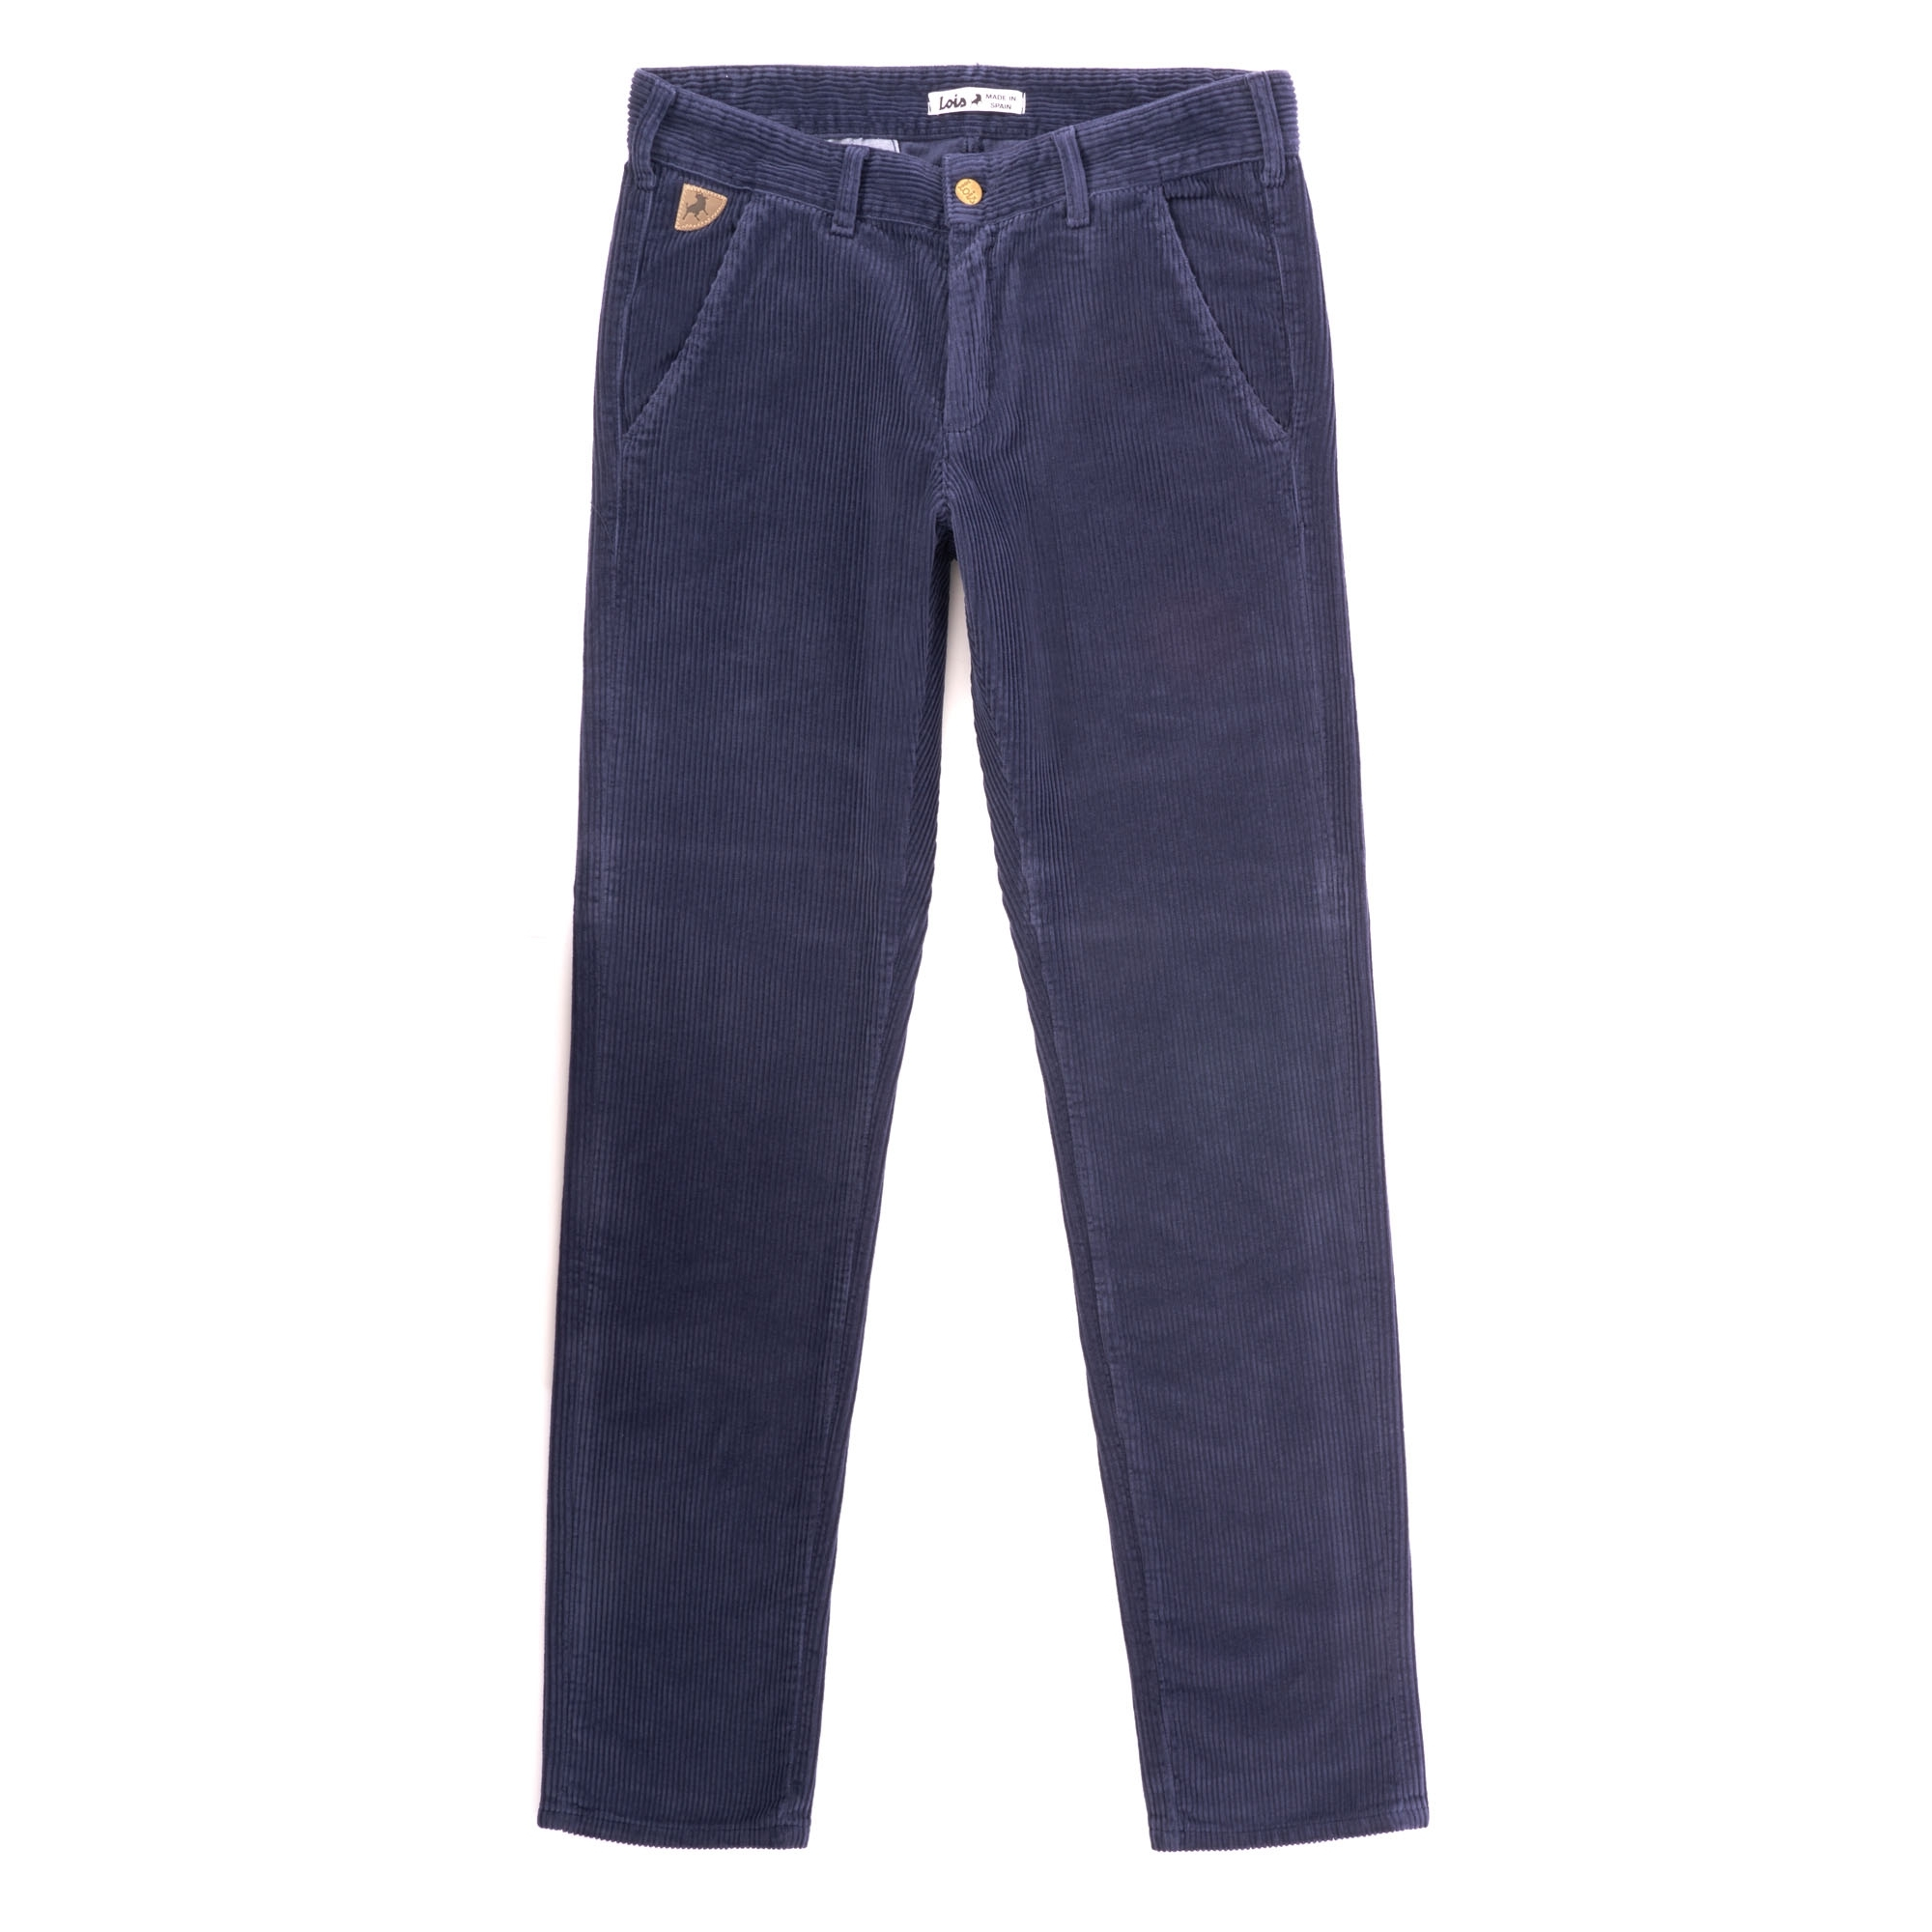 8ff9324c Lois Jeans Sixto Jumbo Cord Trousers | Nightwatch Blue | 5685